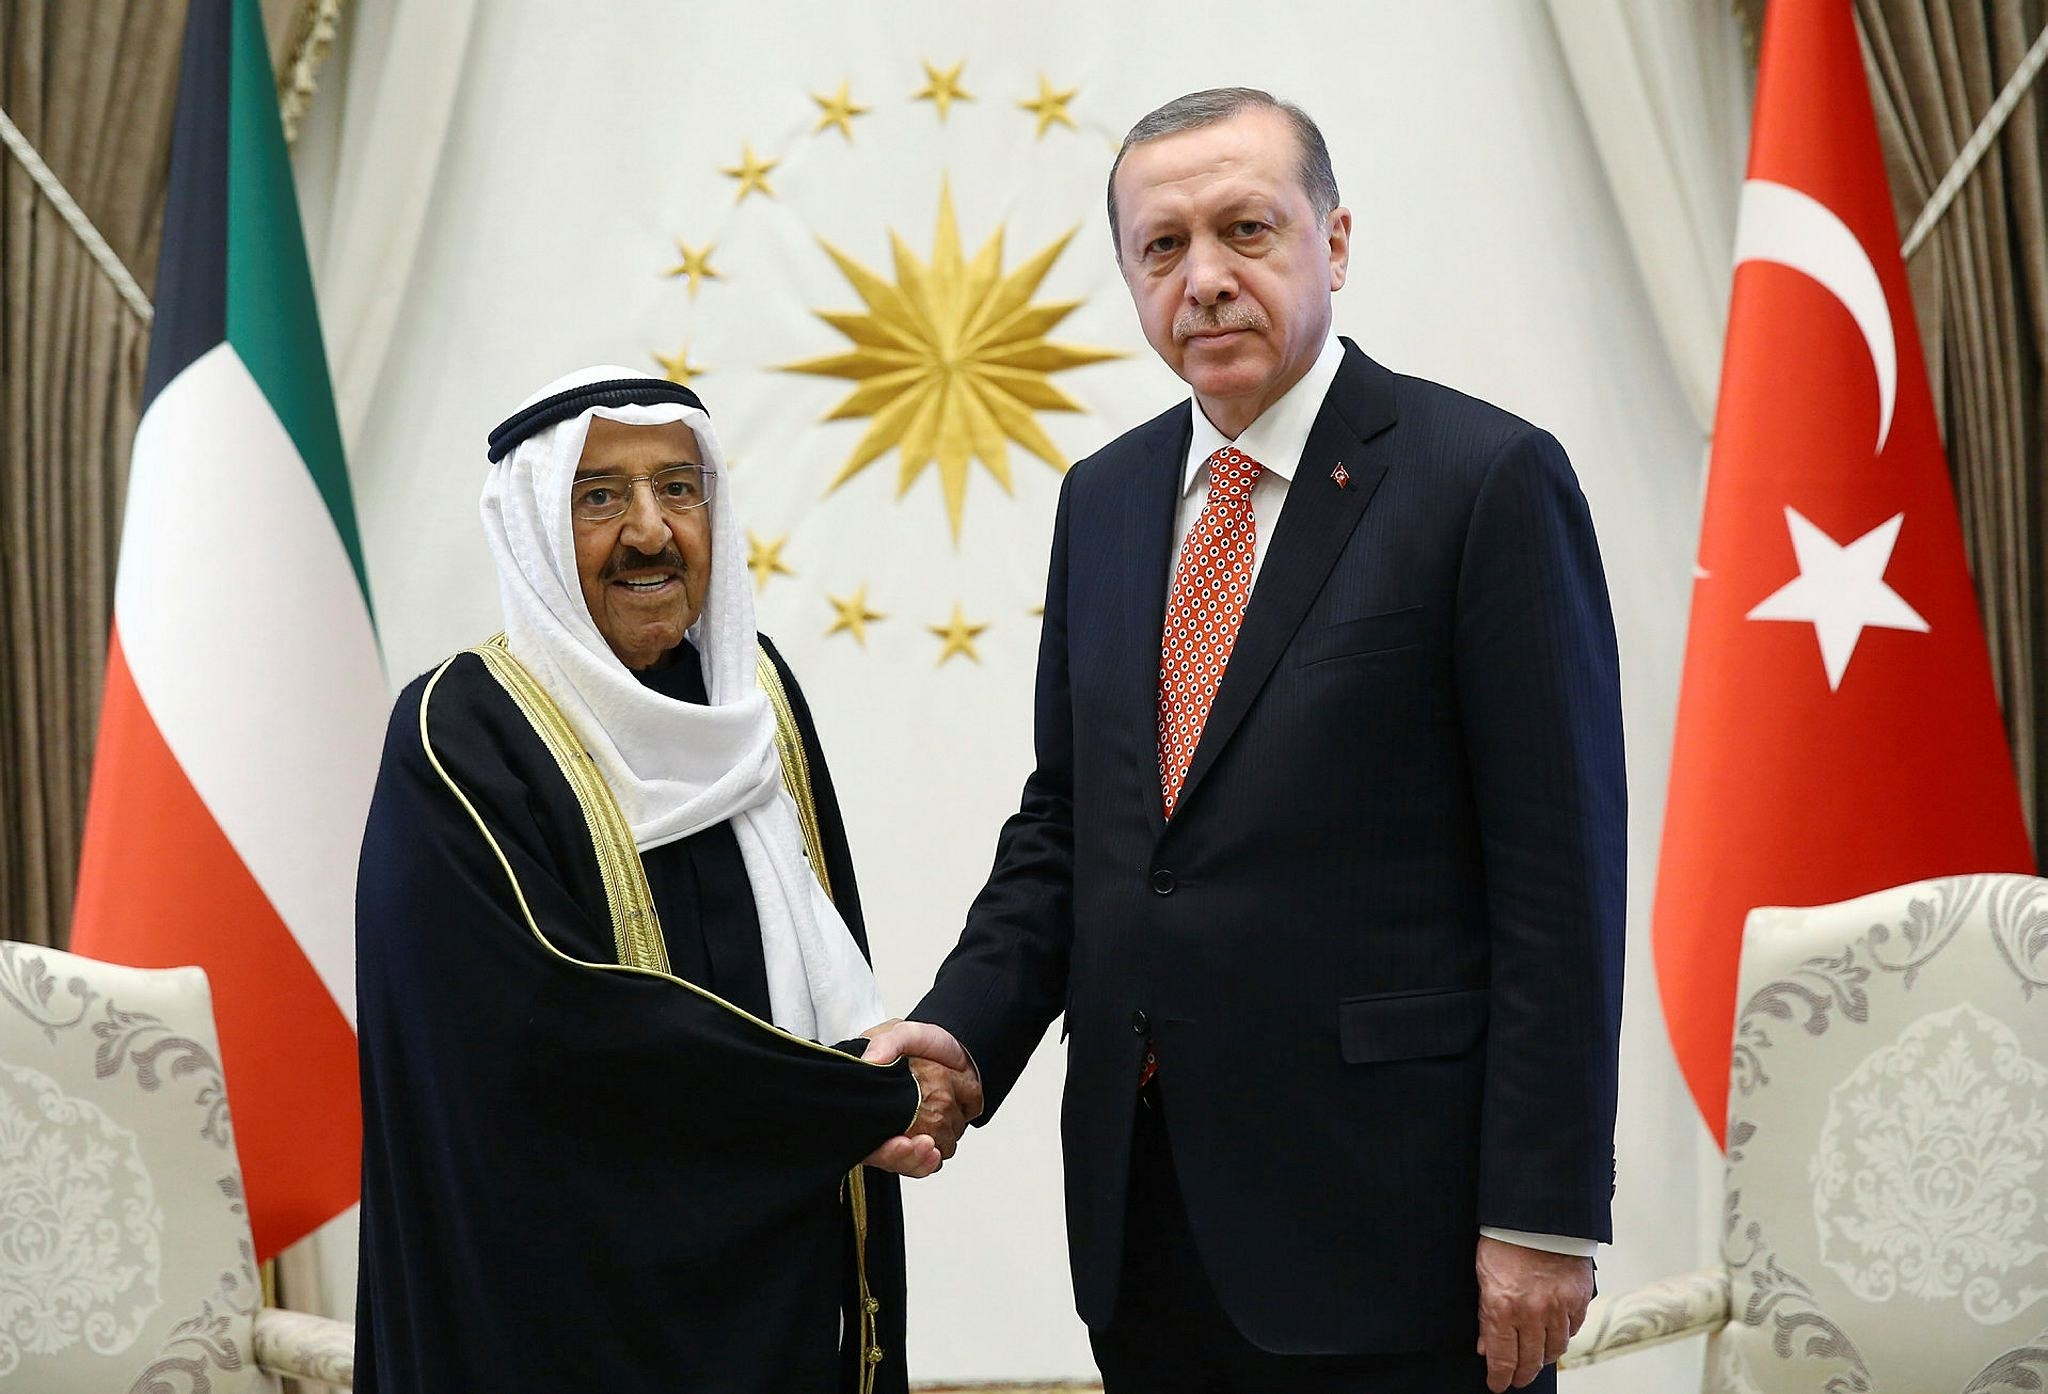 Kuwait's Emir Sheikh Sabah Al Ahmed Al Sabah, left, and President Recep Tayyip Erdou011fan shake hands before a meeting in Ankara, Turkey, Tuesday, March 21, 2017.The Emir is in Turkey for a three-day official visit.